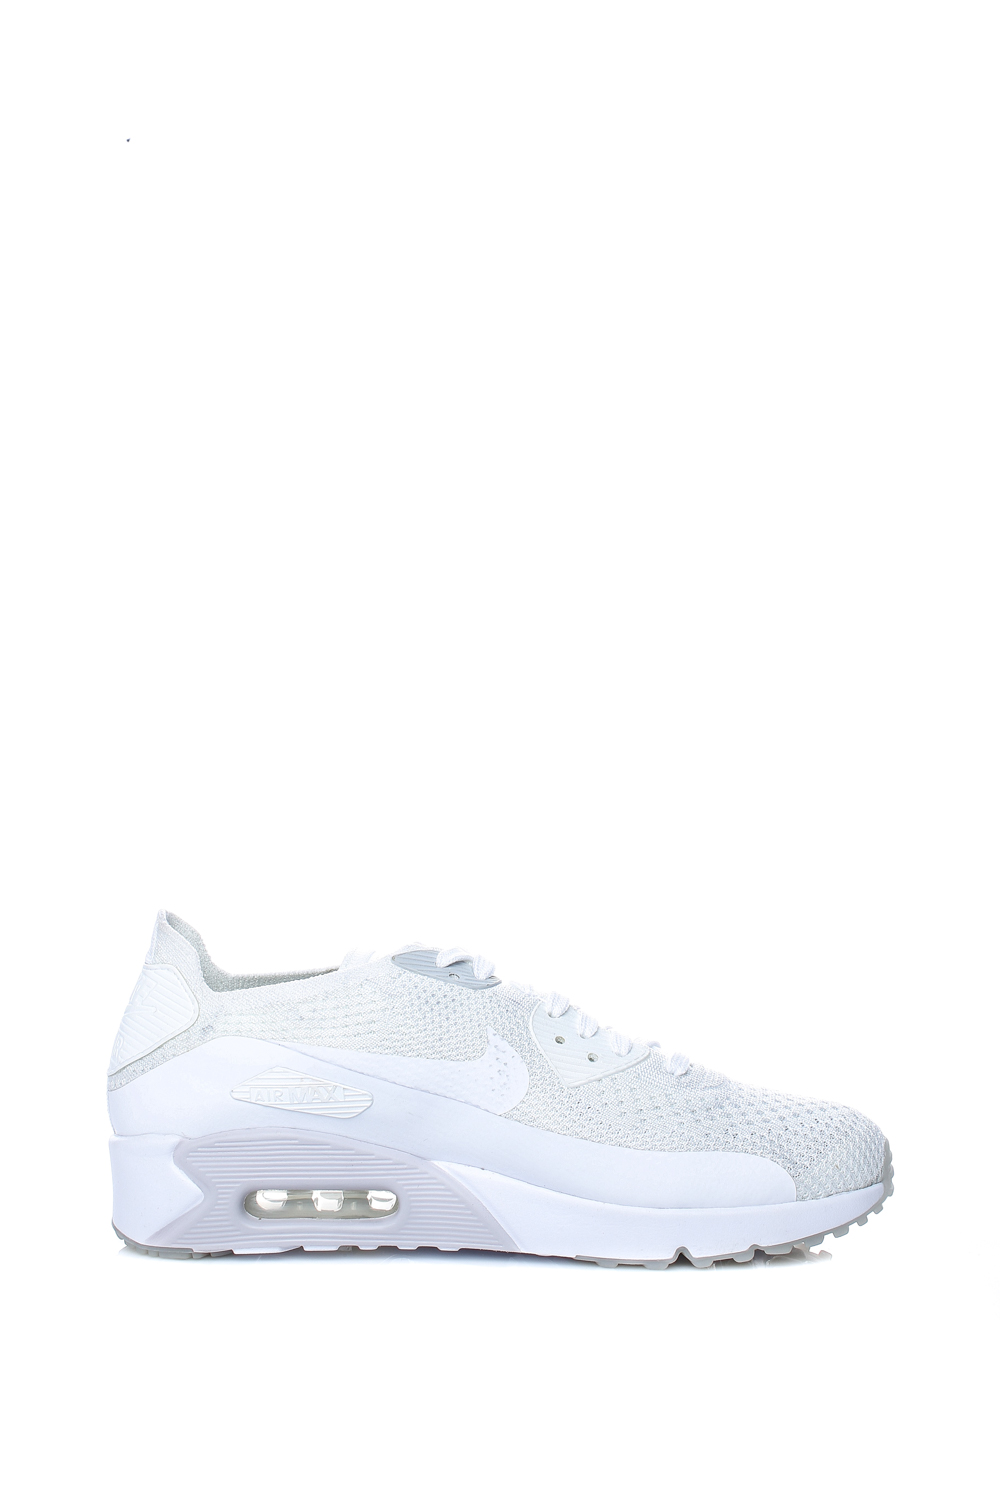 e1f07b0ede5 NIKE – Ανδρικά αθλητικά παπούτσια Nike AIR MAX 90 ULTRA 2.0 FLYKNIT λευκά.  Factoryoutlet